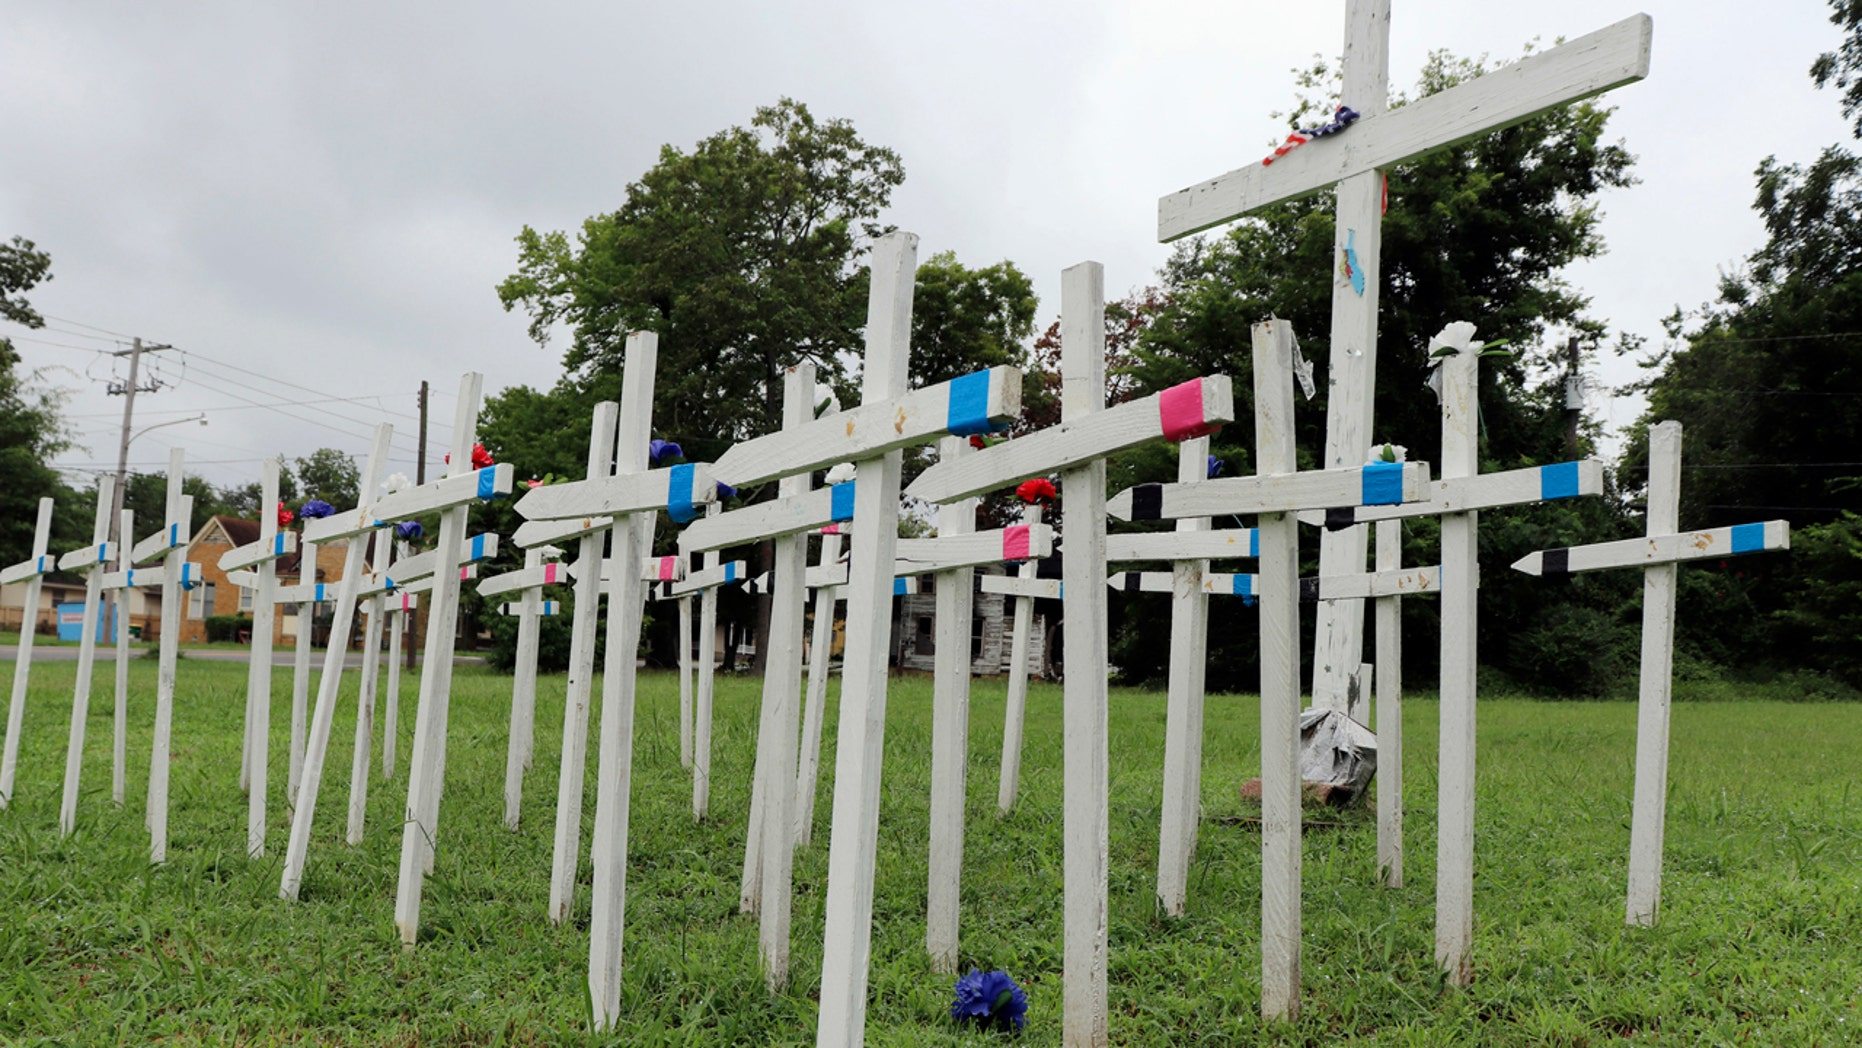 An impromptu memorial filled with crosses sits in a vacant lot near the state Capitol building in Little Rock.